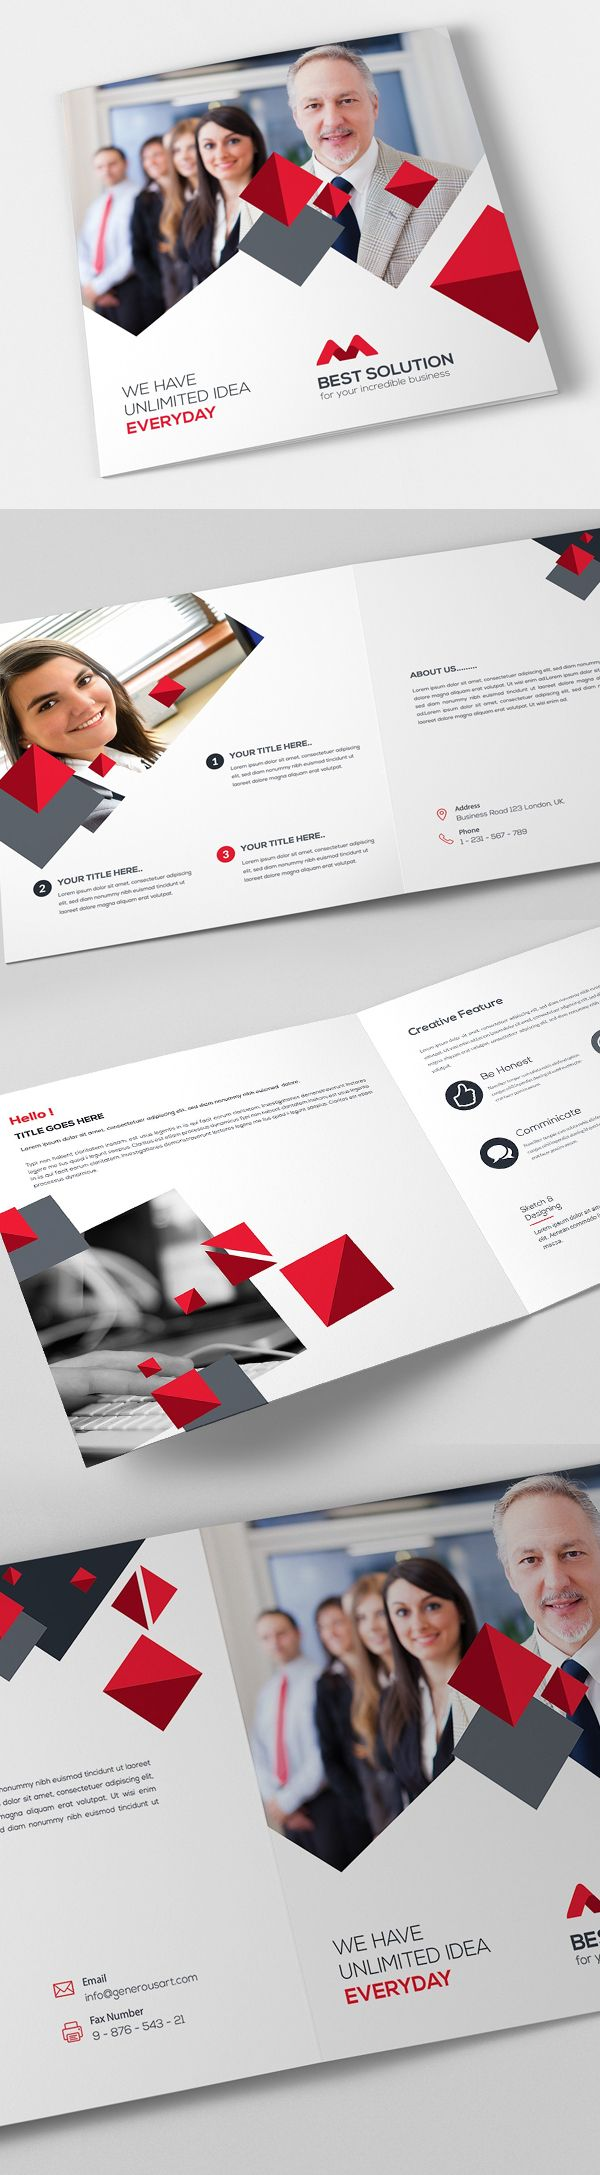 Professional clean and modern Business Brochure Templates ready to use print ready designs These brochure templates can save your time and money in